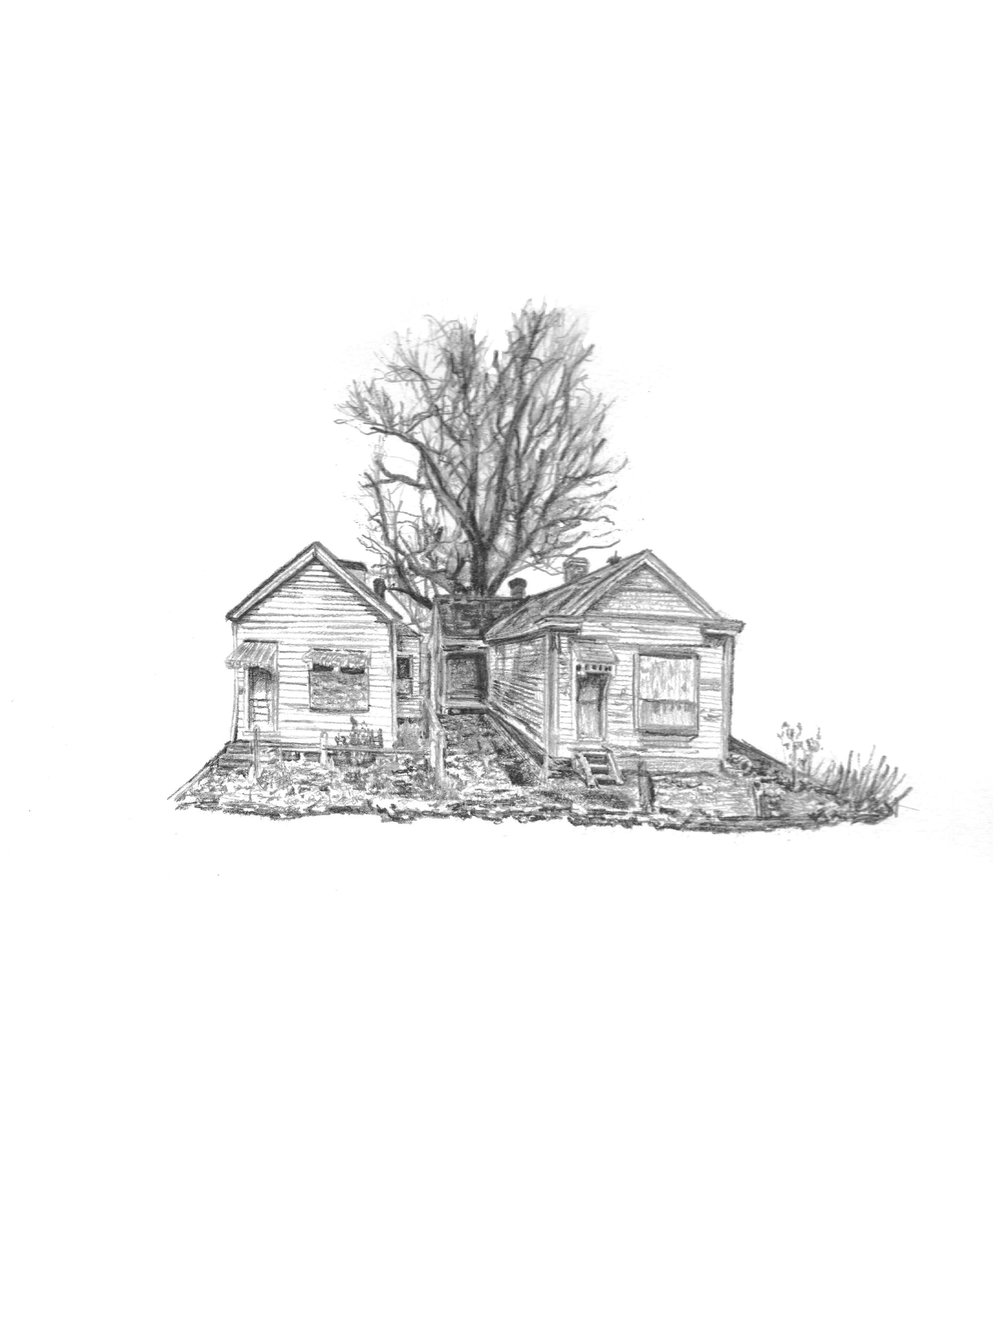 """717 E. Ormsby"" by Samantha Ludwig, Graphite on Paper, 9x14in, 201 $150"